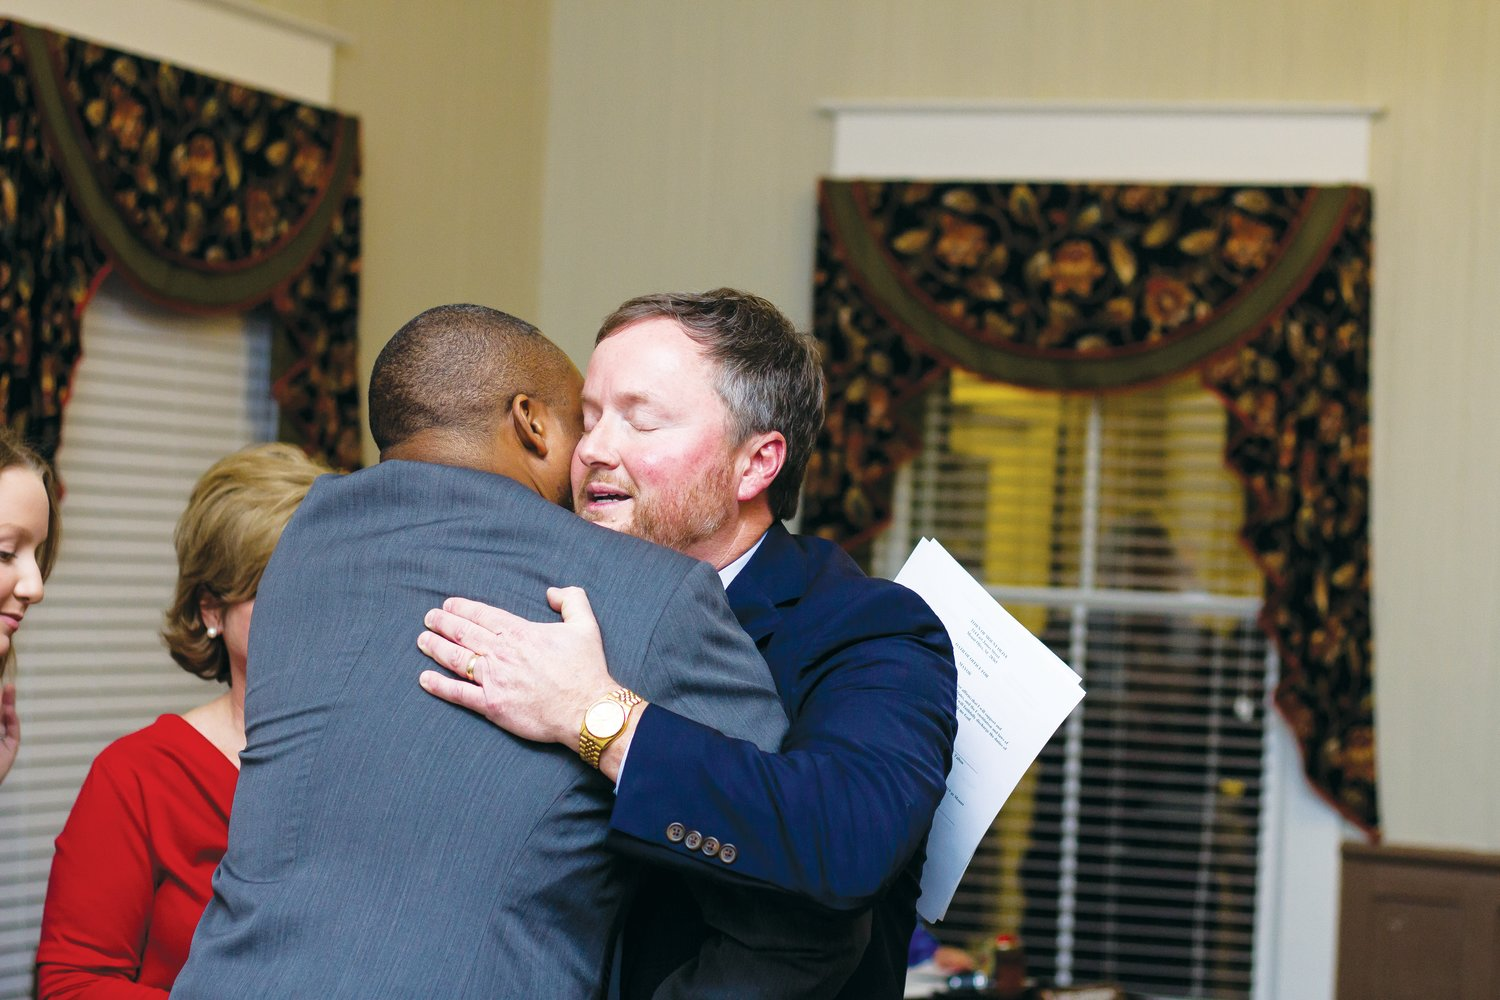 Mayor Kenny Talton hugs friend and Sen. Don Davis after being sworn in as the new mayor of Mount Olive.